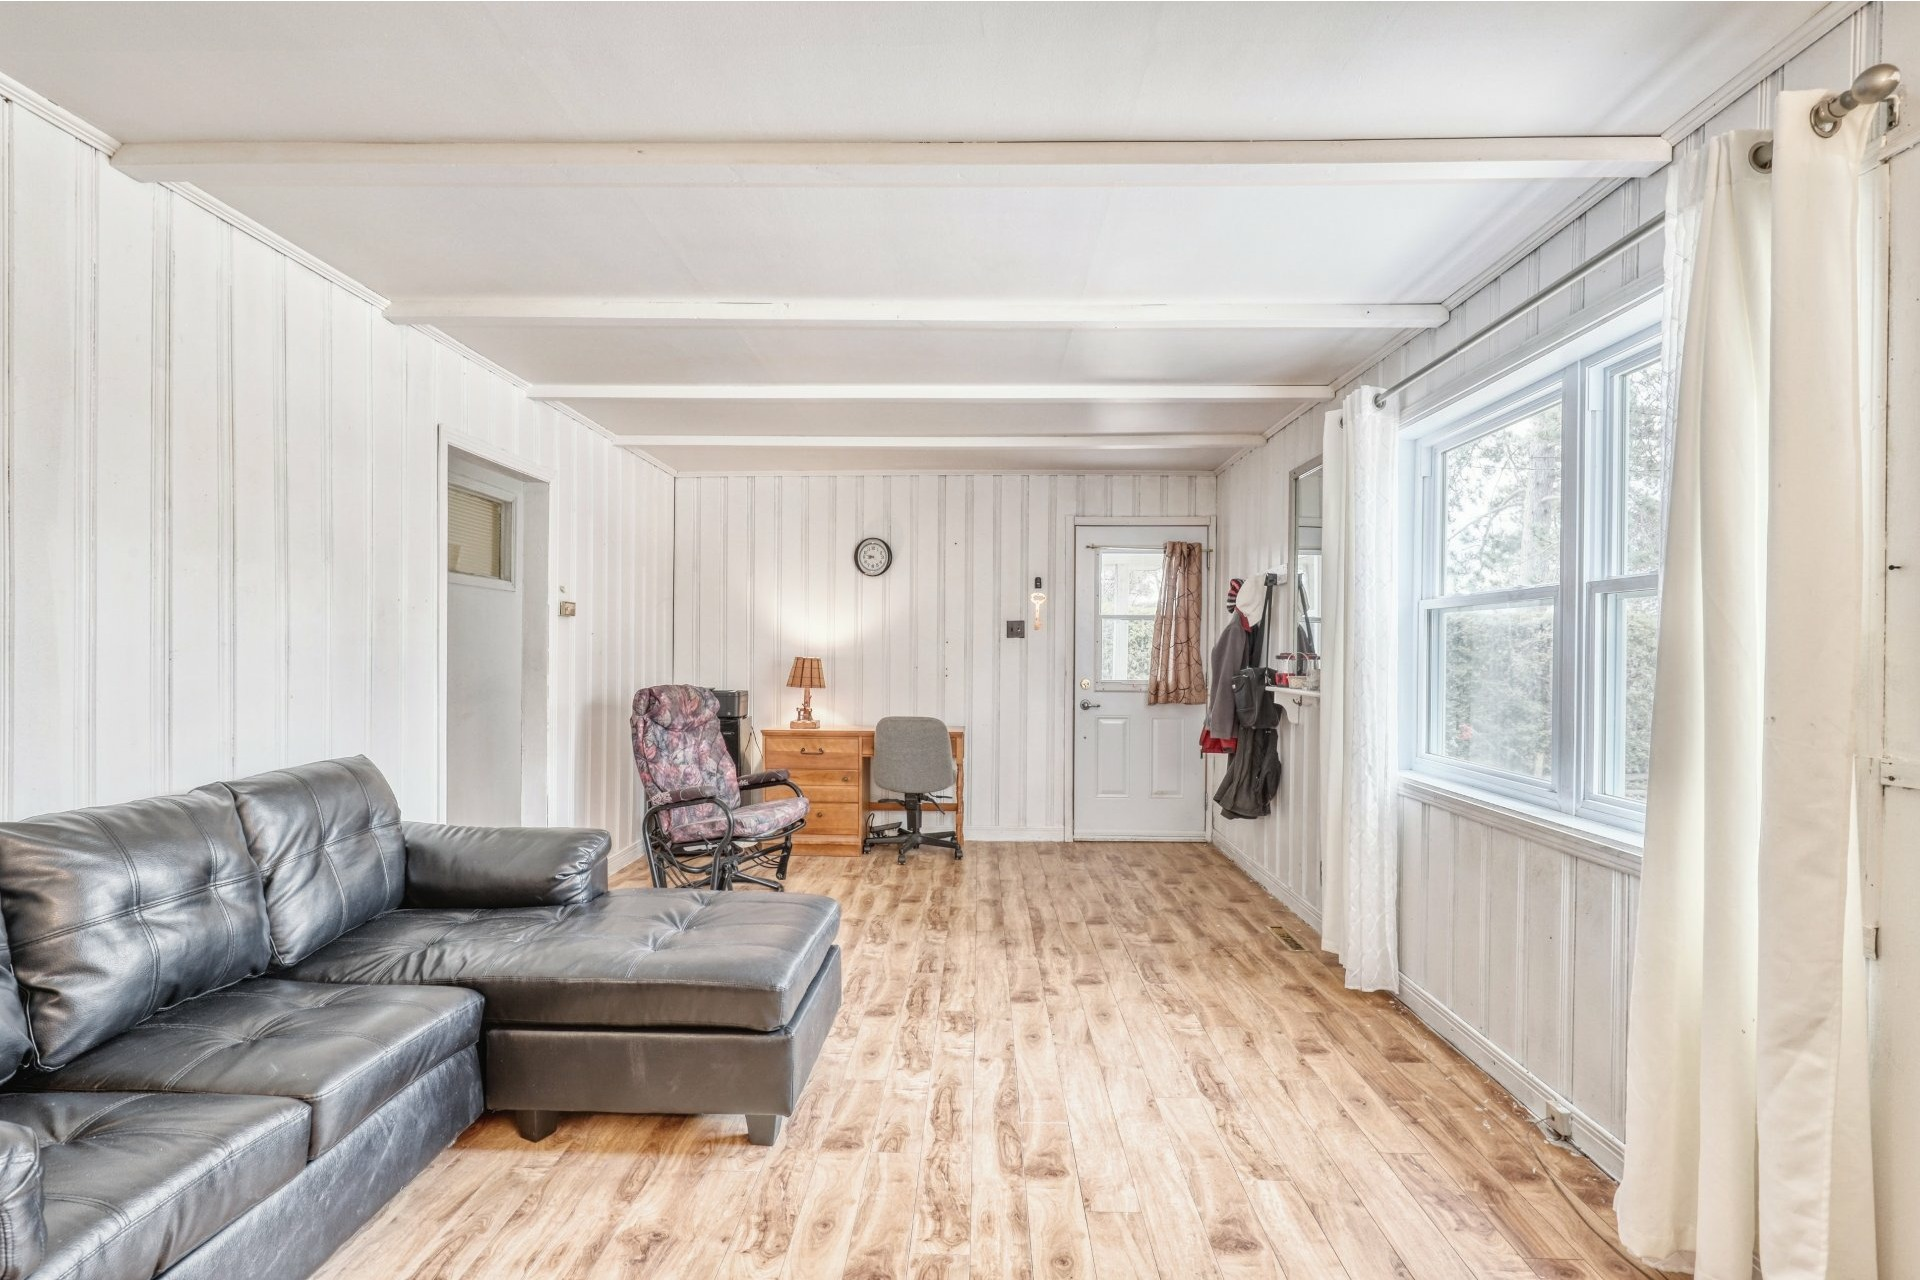 image 7 - House For sale Rawdon - 6 rooms